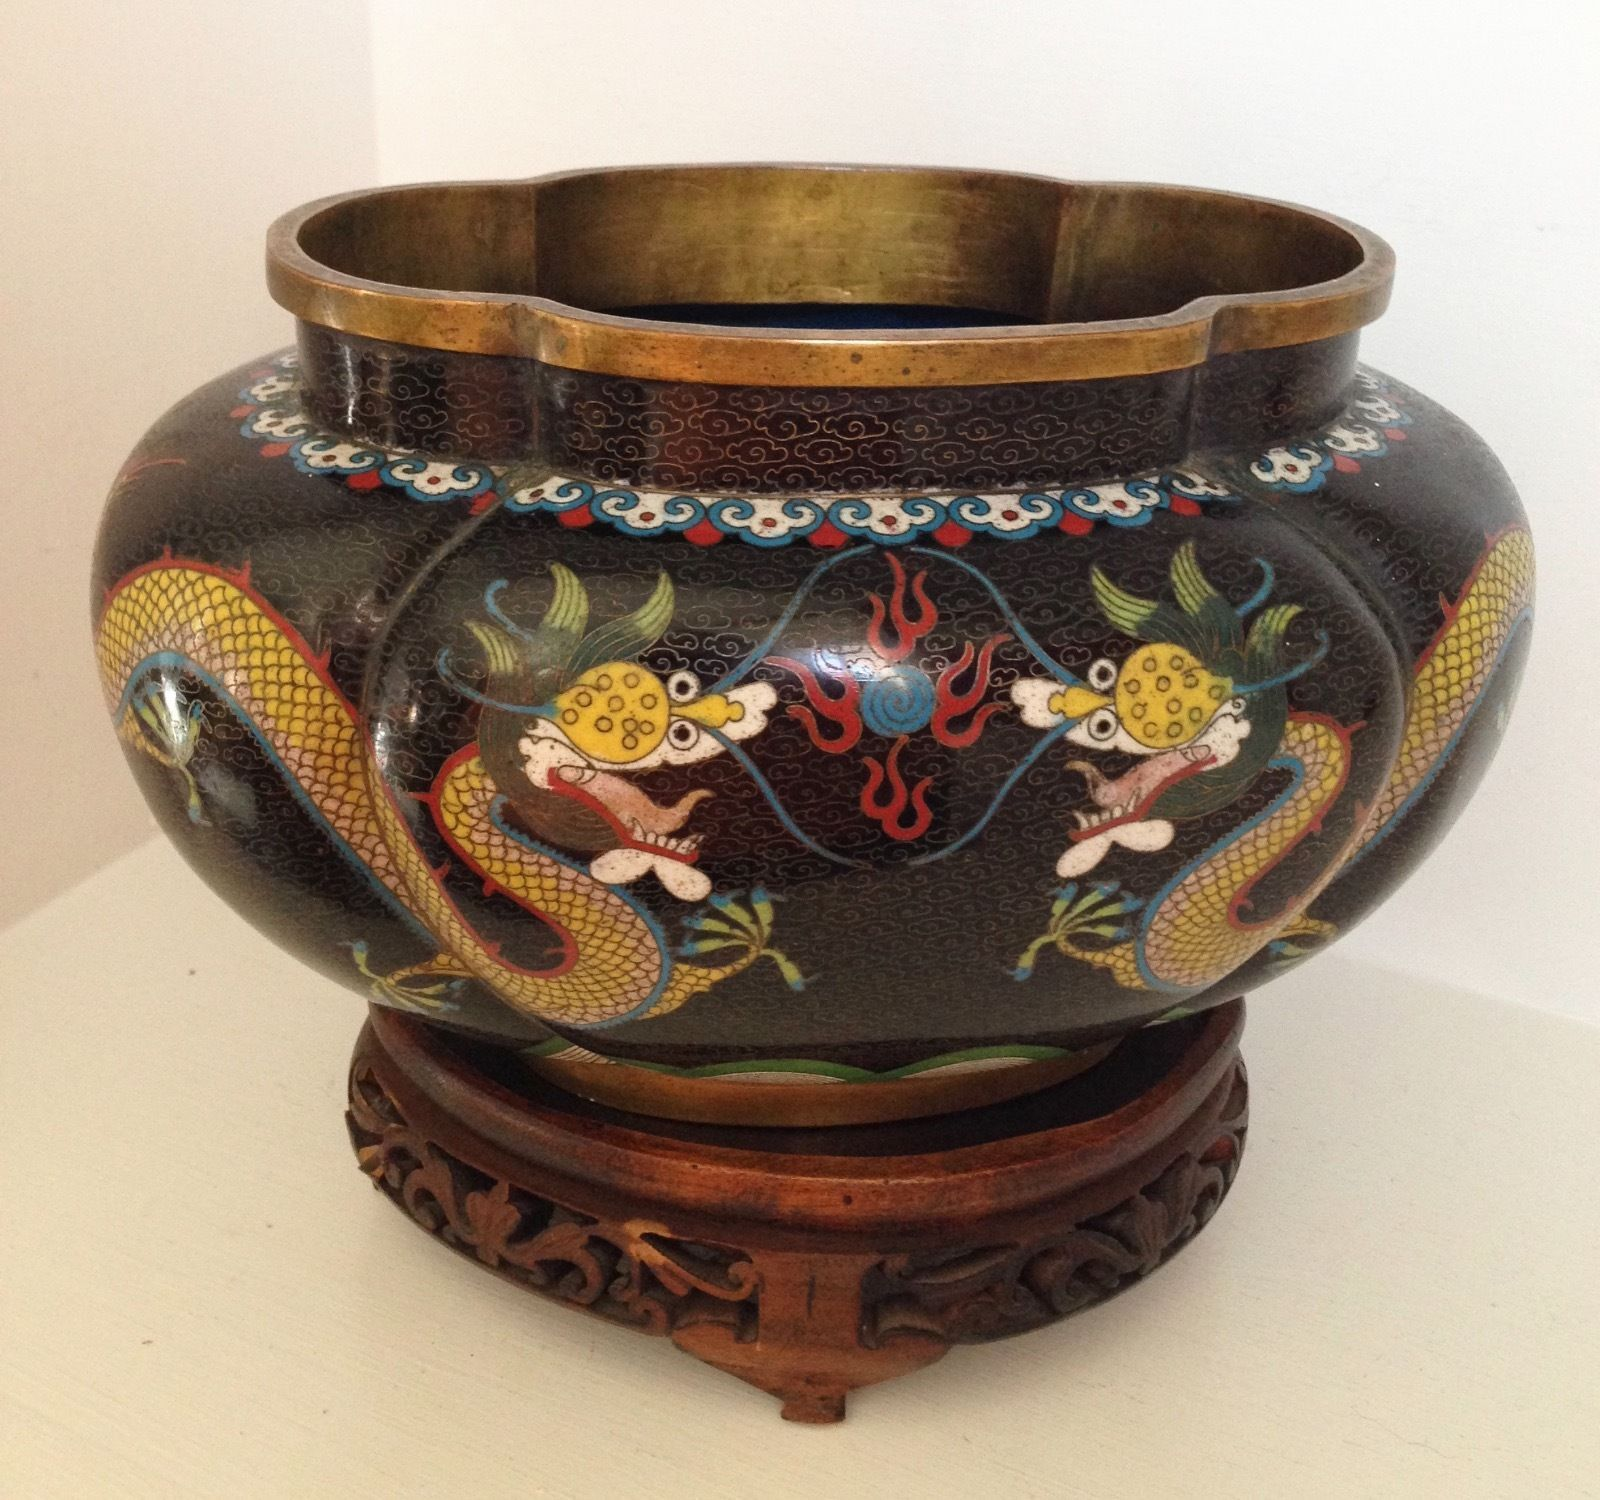 Antique 10 chinese cloisonne lobed oval jardiniere planter antique 10 chinese cloisonne lobed oval jardiniere planter dragons fine stand ebay reviewsmspy